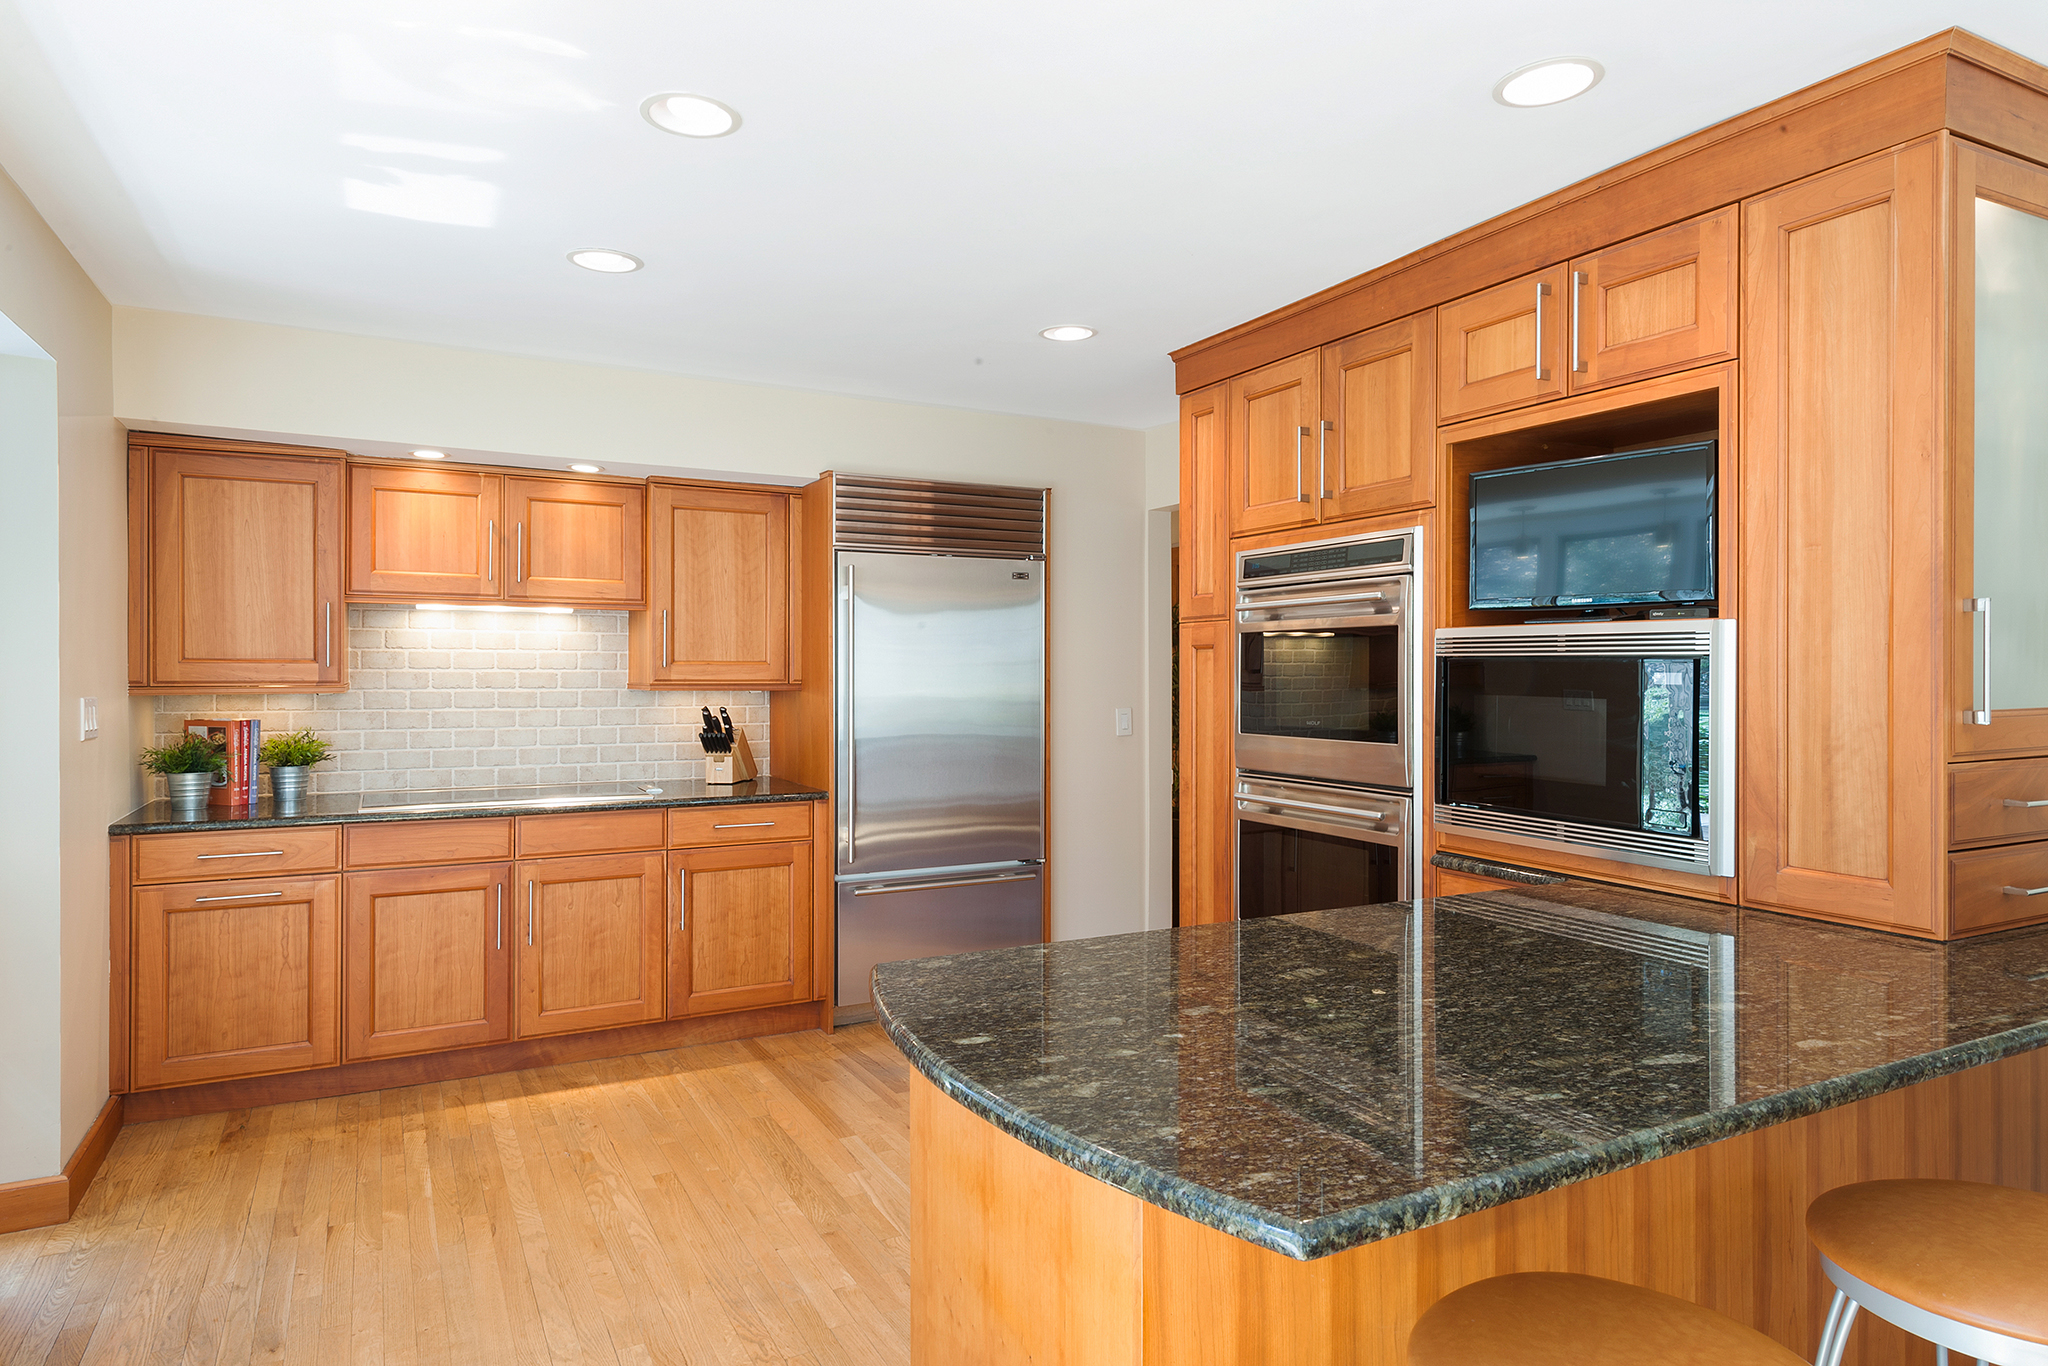 06 1 Dinner Pot Road, Tewksbury– Kitchen (deleted 4ad9ff93594cc6edfb8fb416e14d7120)